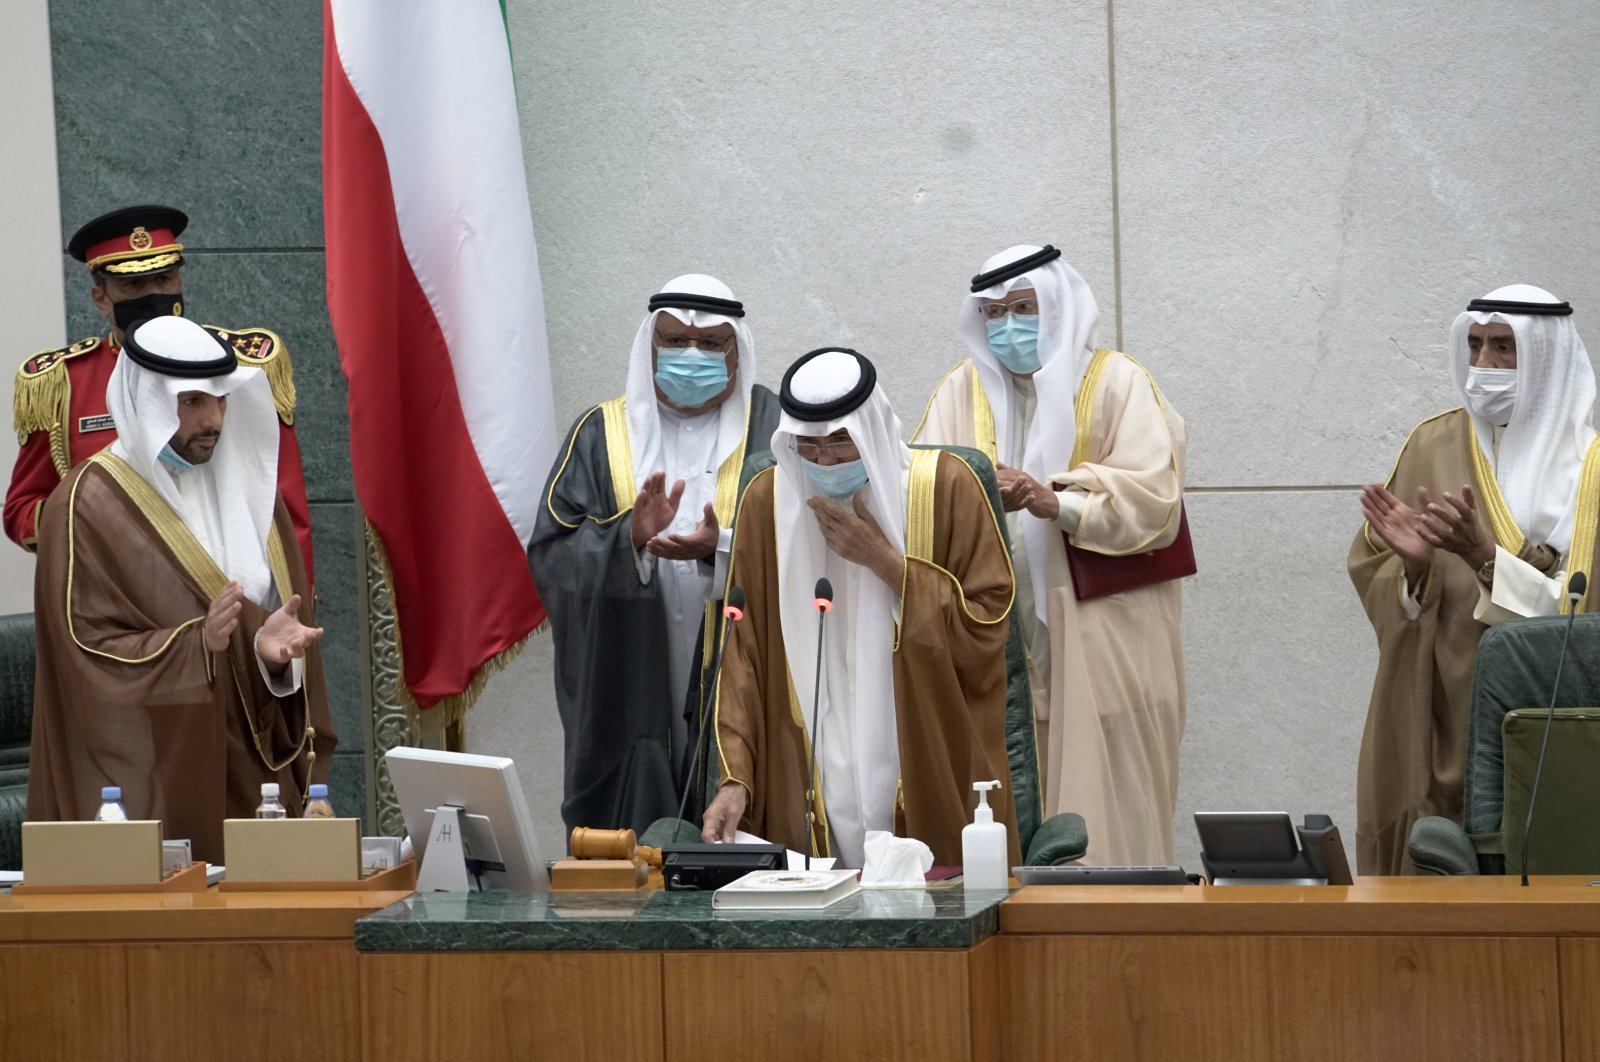 Kuwait's new Emir Nawaf Al Ahmad Al Sabah takes the oath of office at the parliament, Kuwait City, Kuwait, Sept. 30, 2020. (Reuters Photo)